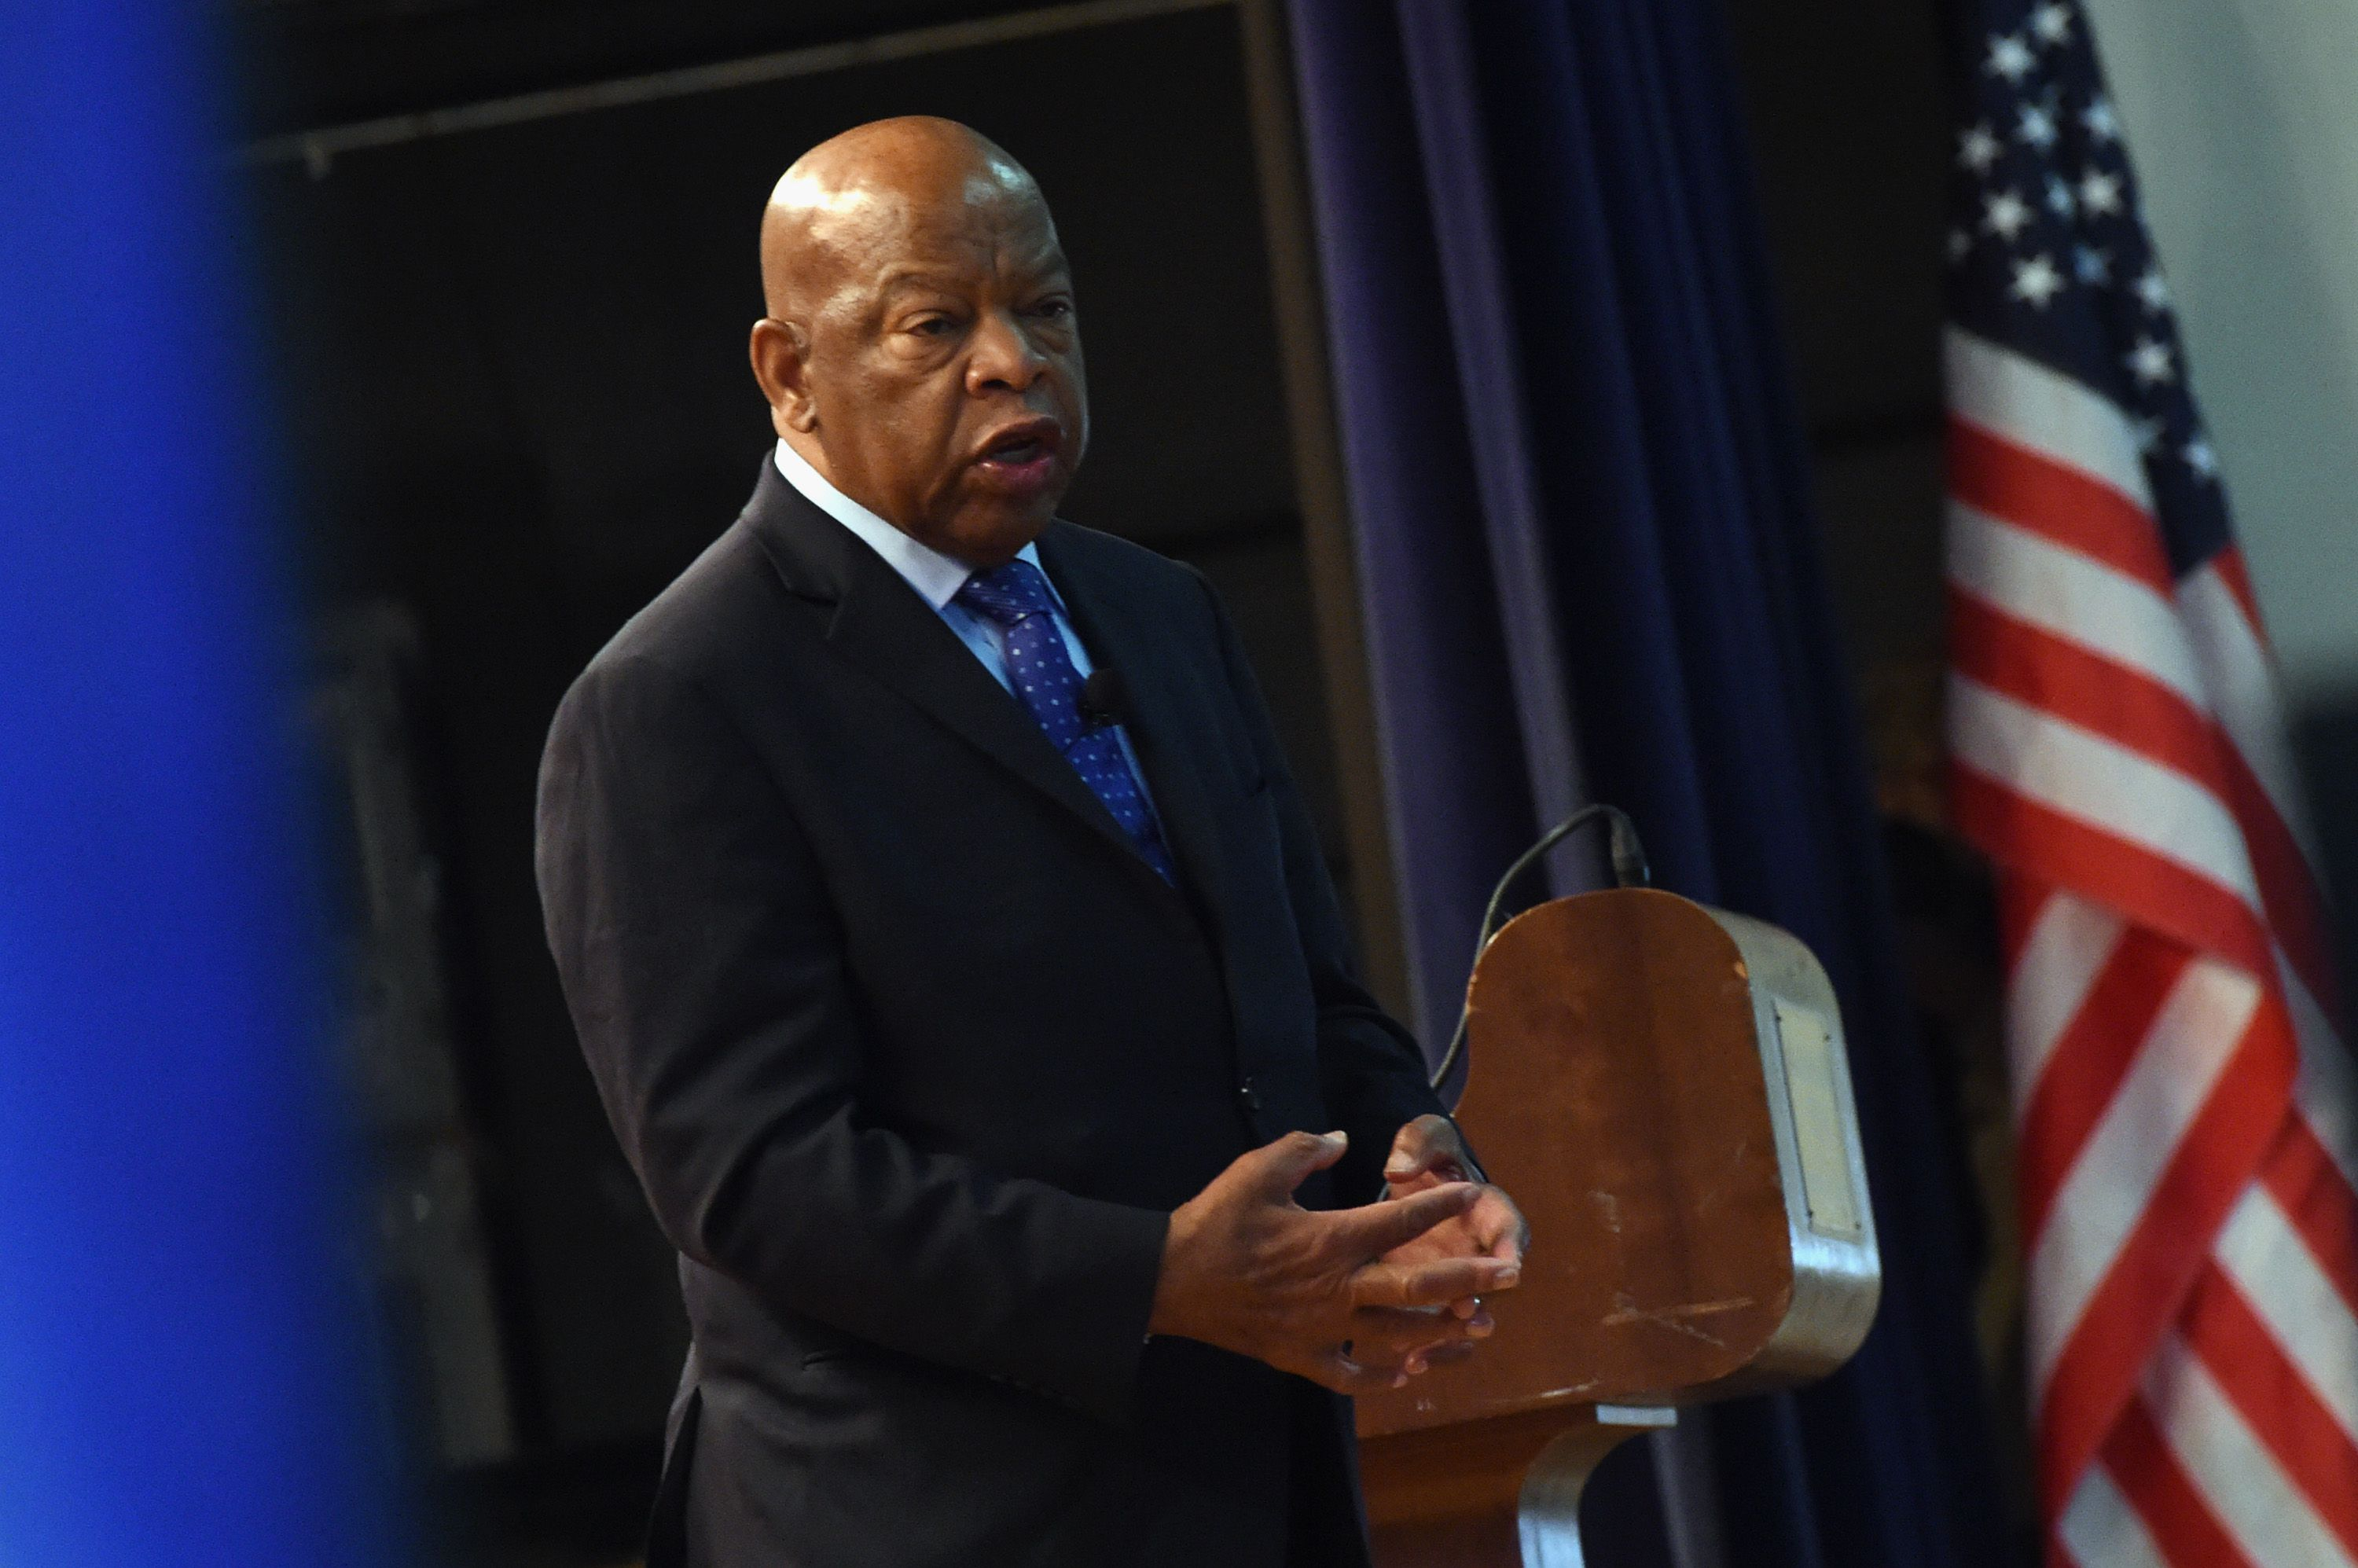 Civil rights icon Rep. John Lewis diagnosed with stage 4 pancreatic cancer - Axios